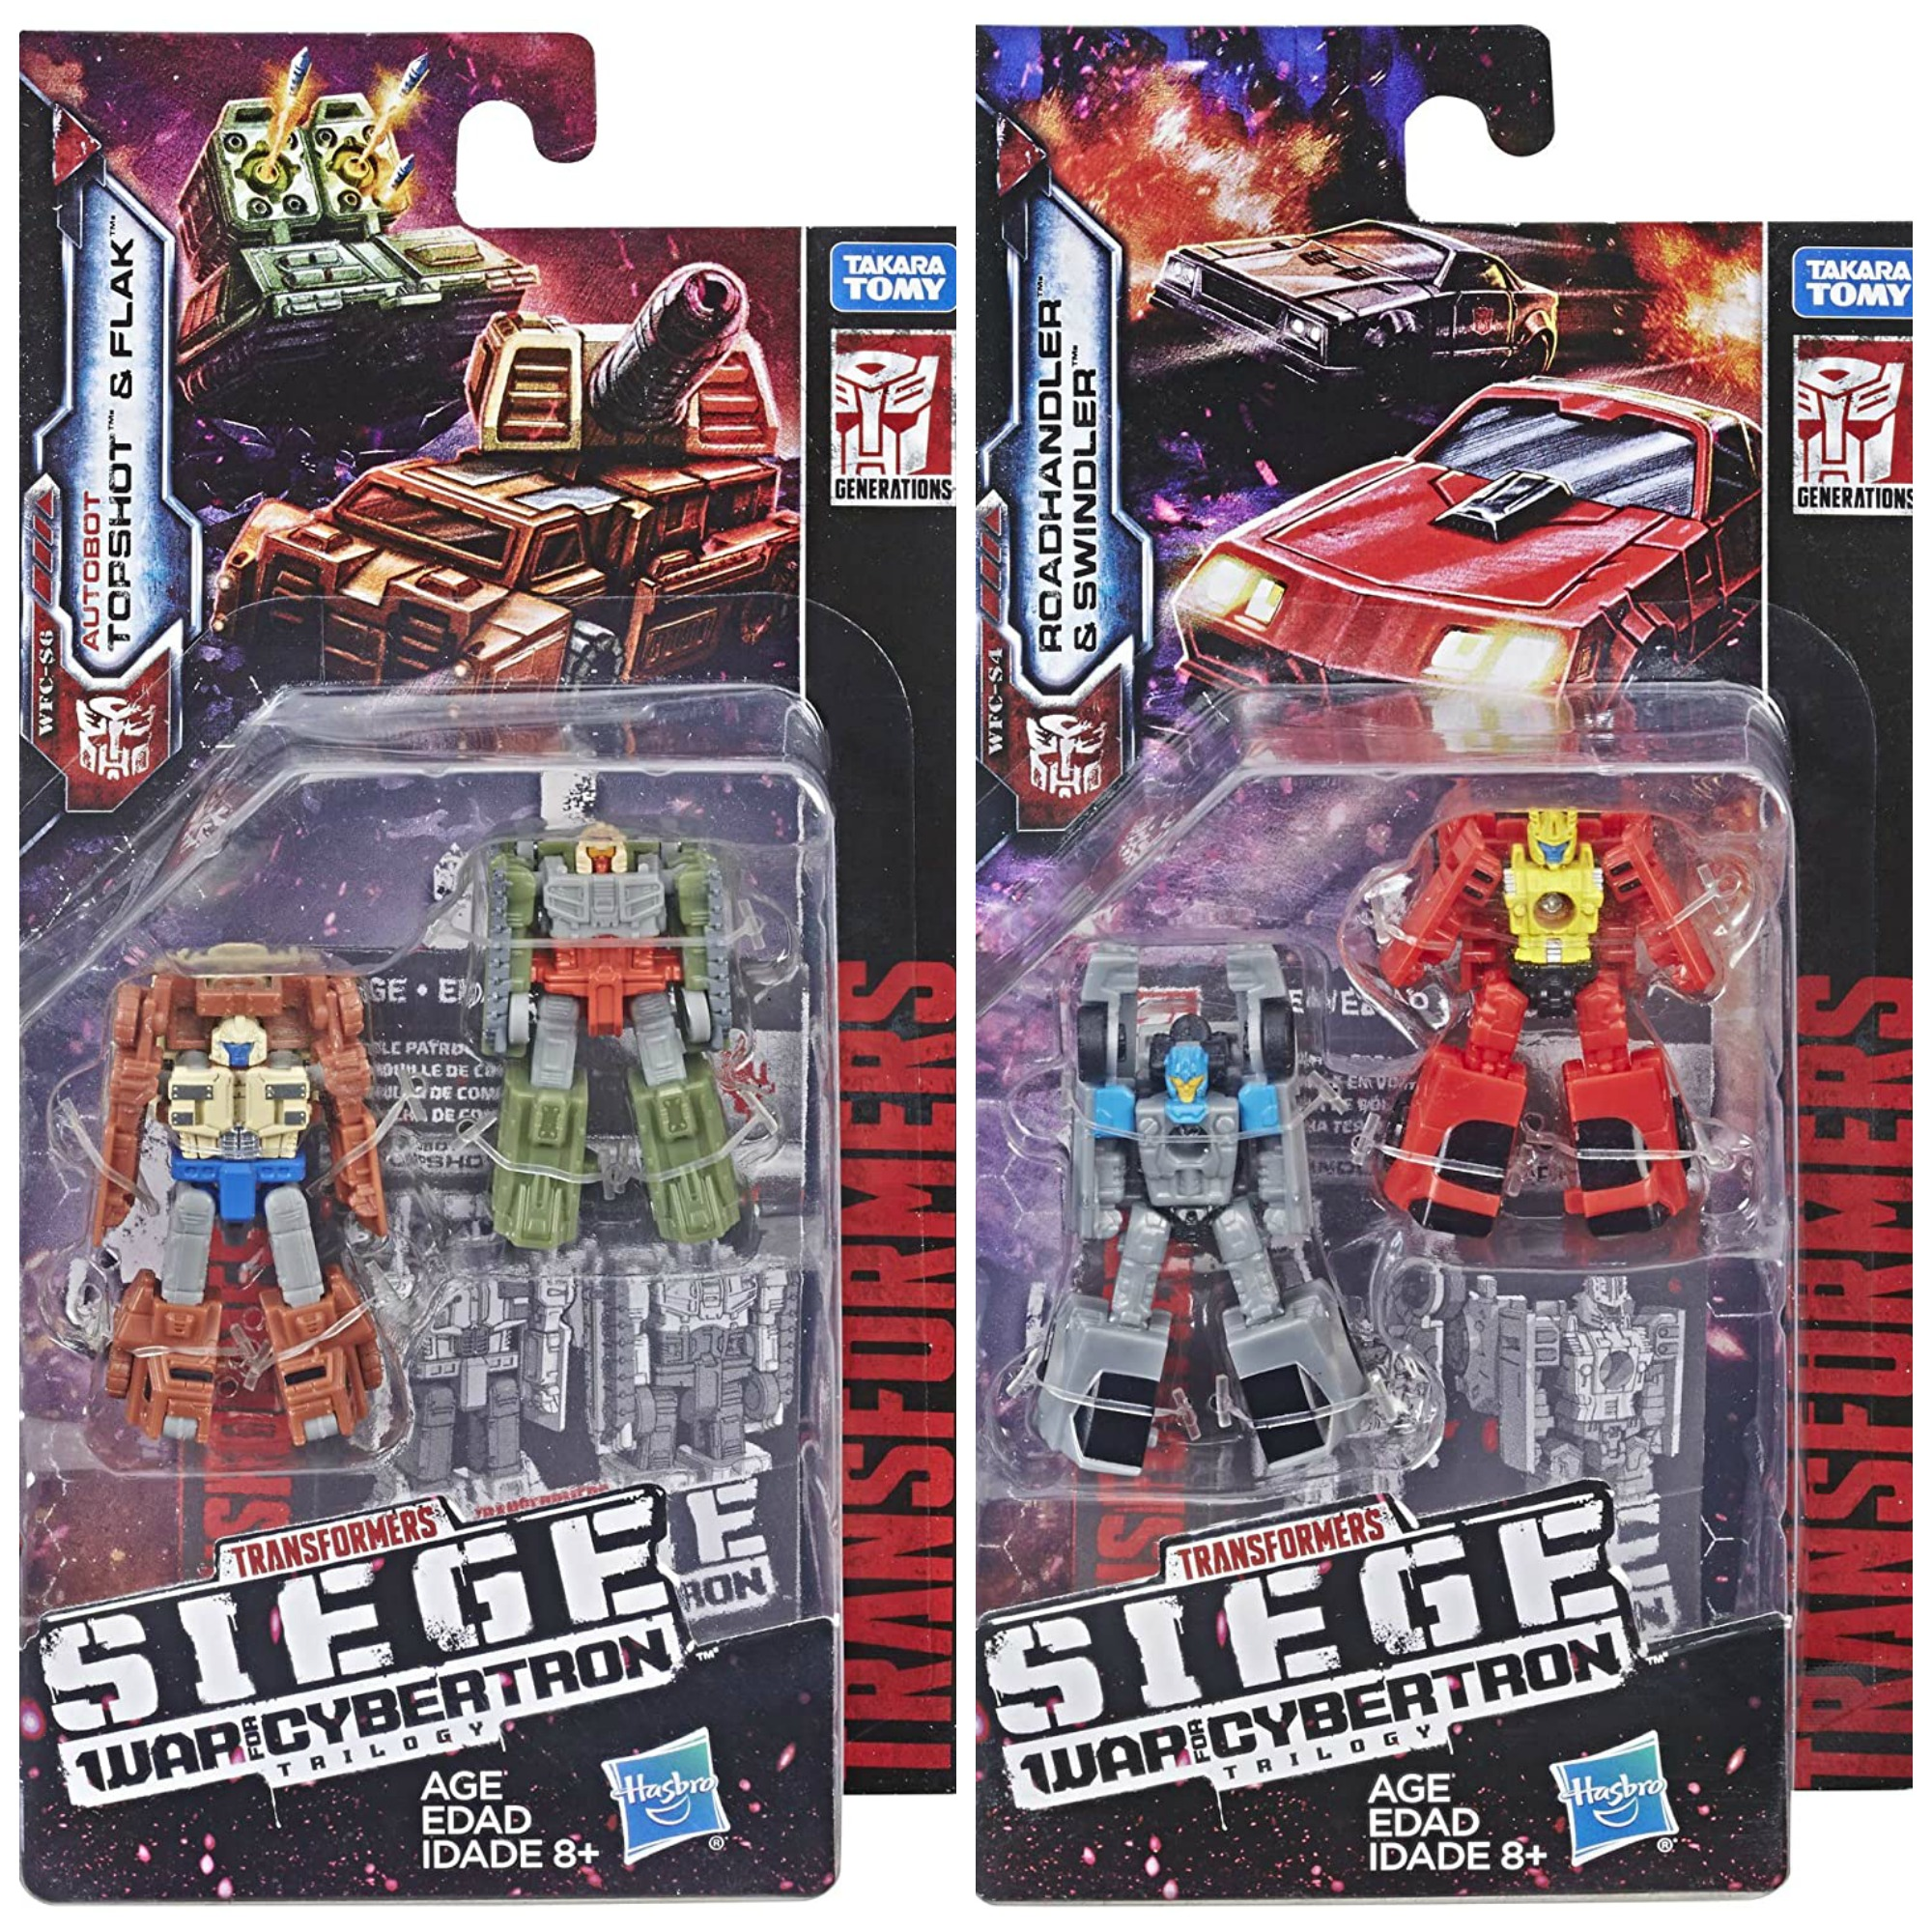 Transformers Generations Toys on Sale for as low as $4.99 (Reg. $10)!!